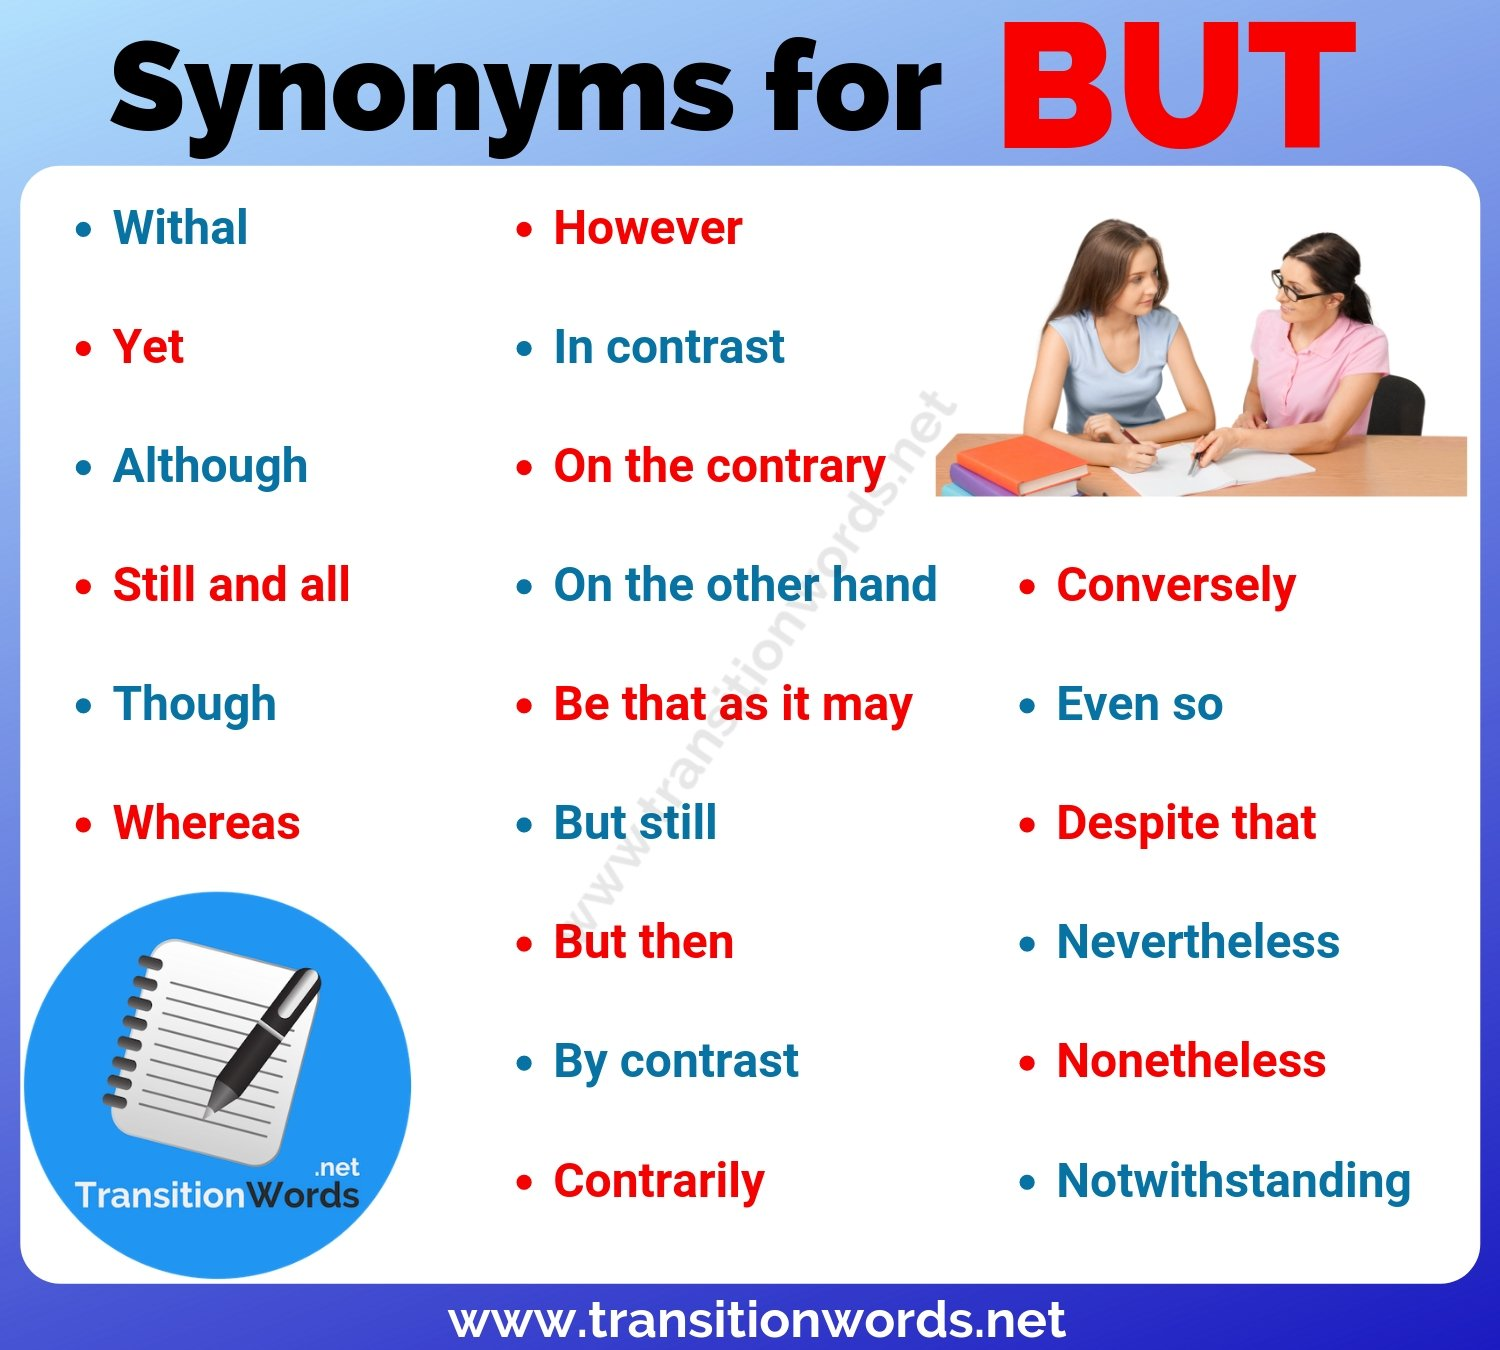 BUT Synonym: Helpful List of 21 Synonyms for But with ESL Pictures